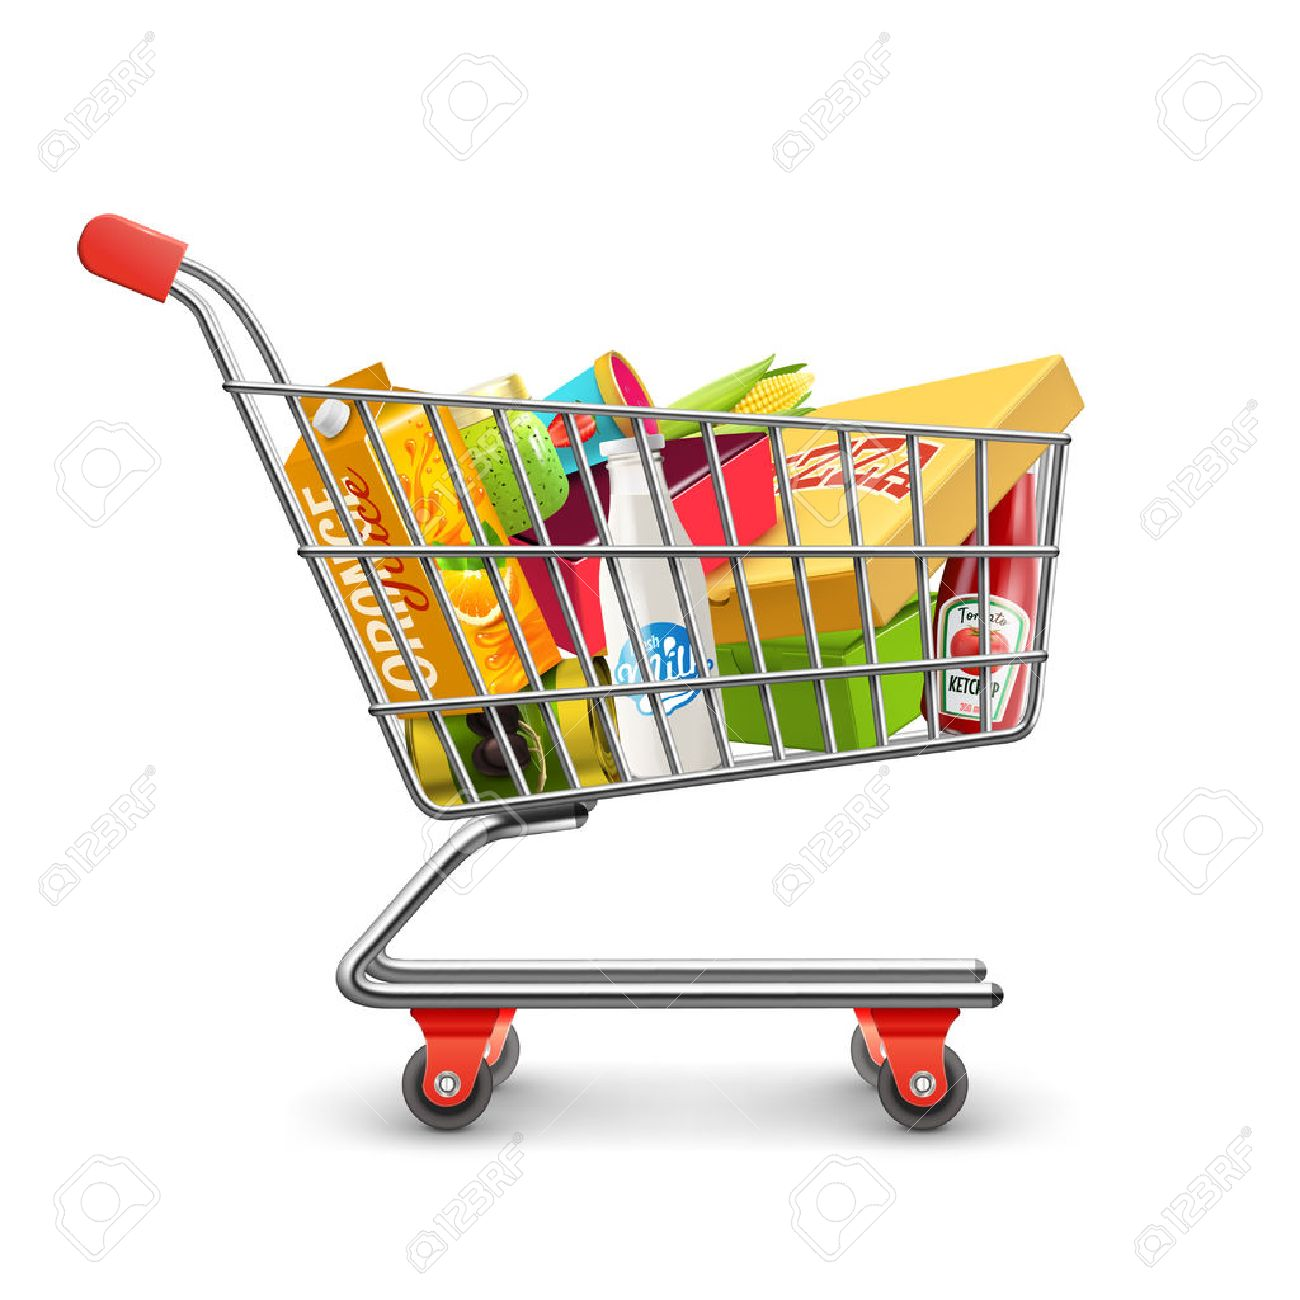 Self-service supermarket full shopping trolley cart with fresh grocery products and red handle realistic vector illustration Stock Vector - 52694854